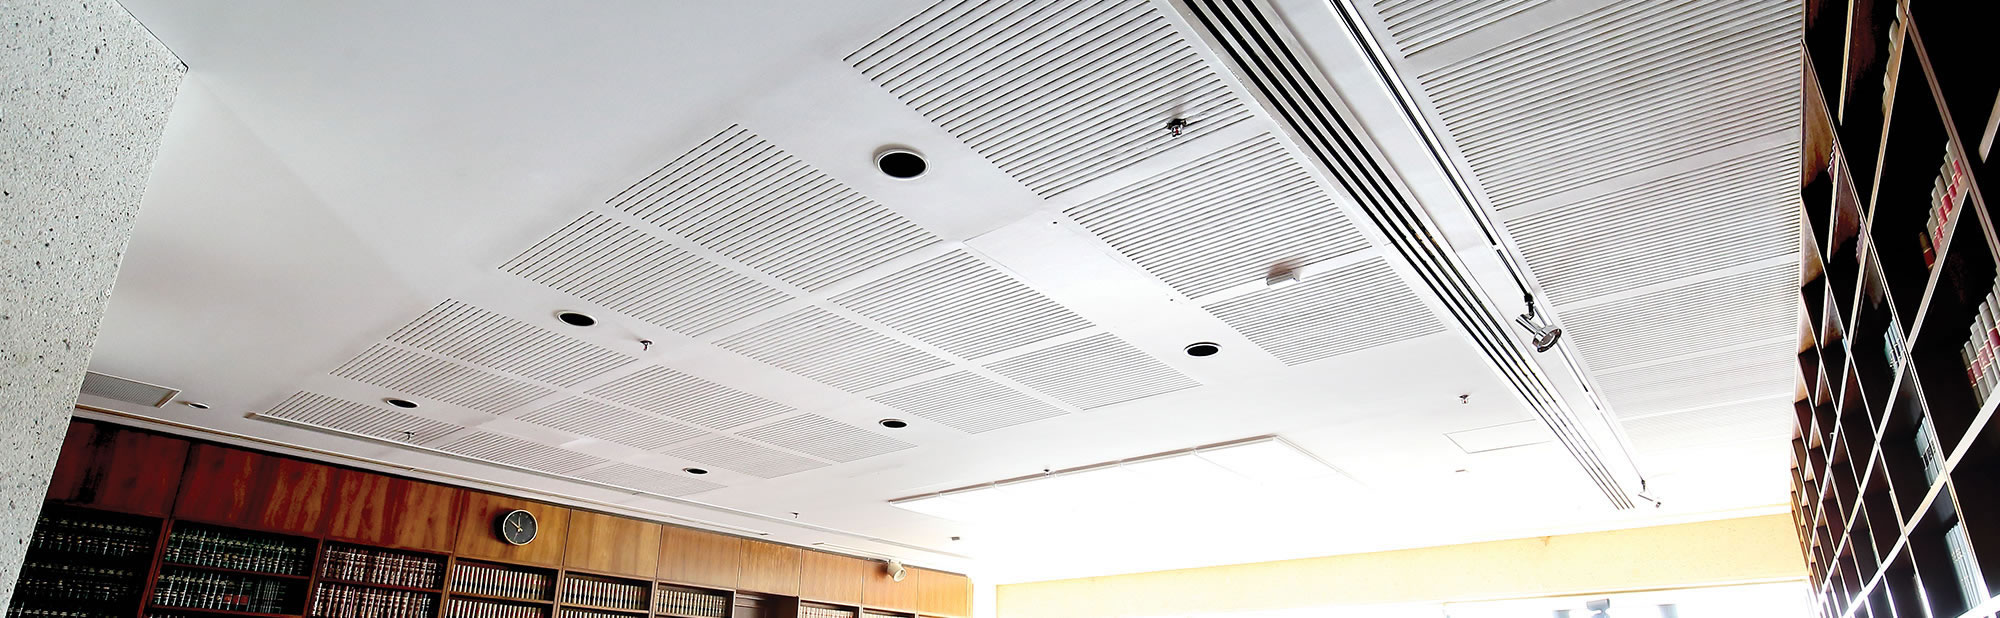 acousticplus ceiling thermo ebossnow acoustic r maintain ecoplus with by systems panels prev values